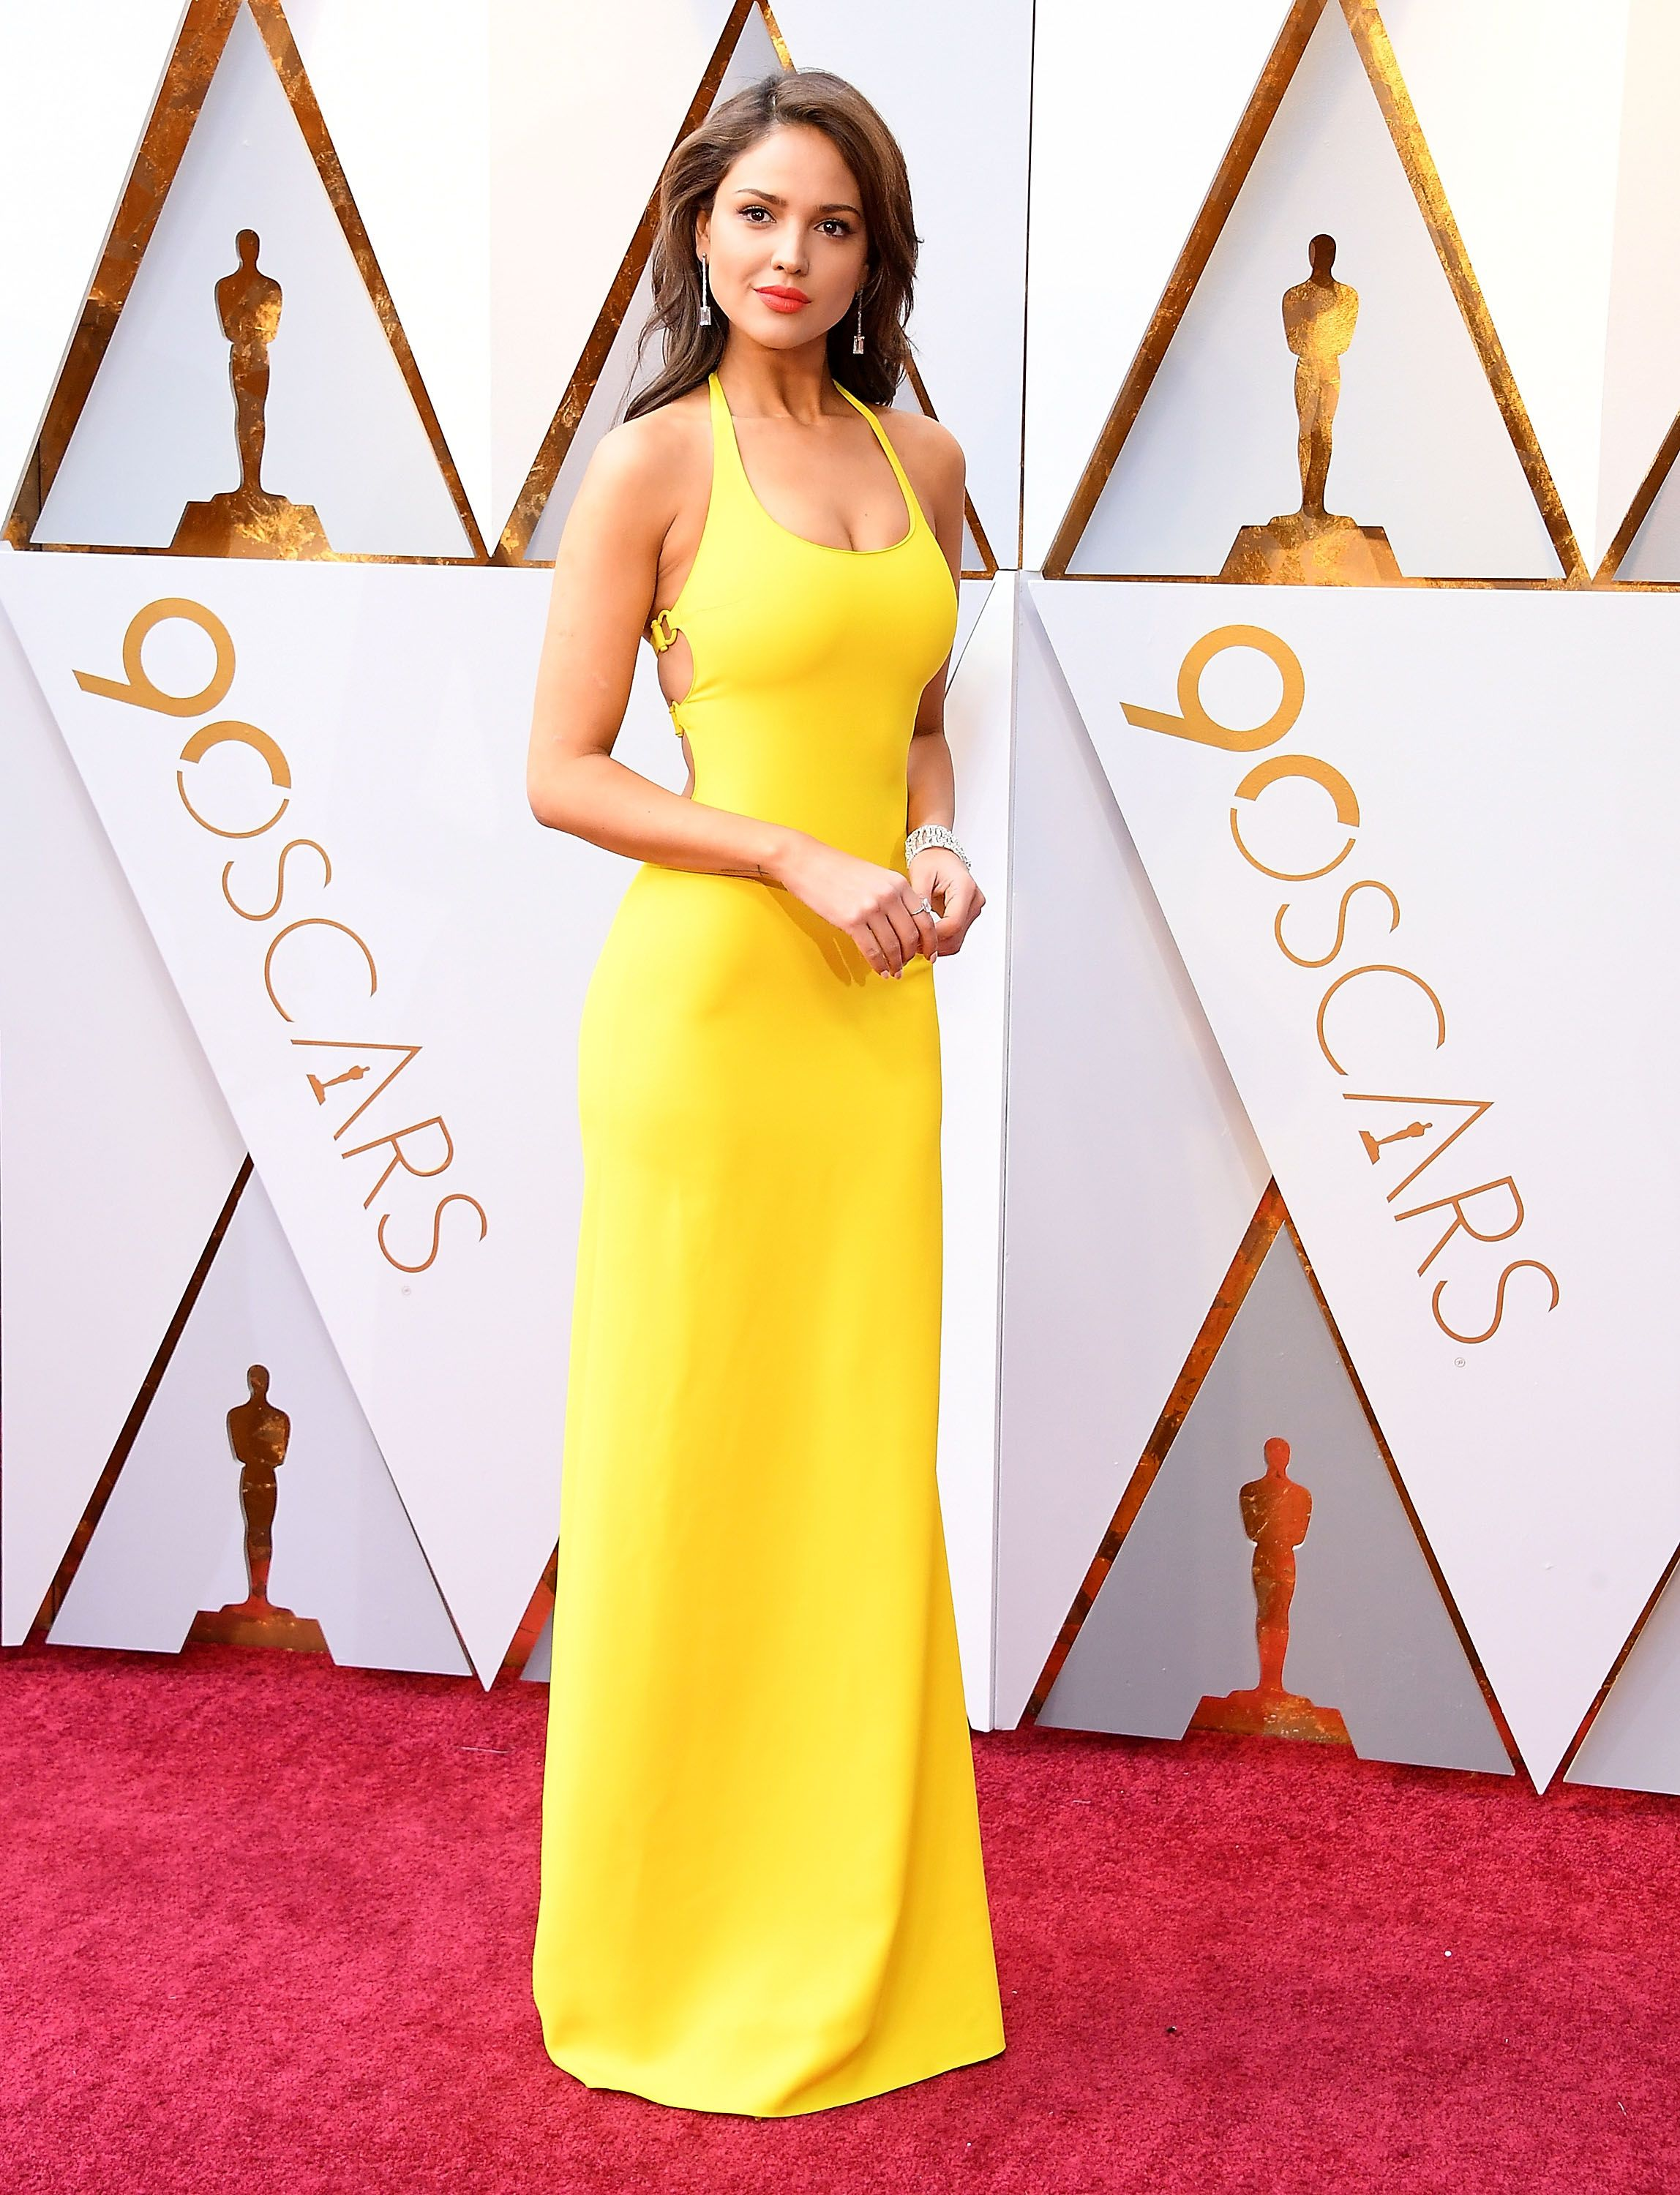 Eiza González, 2018 Eiza González brightened up the red carpet in a very yellow Ralph Lauren gown that shows less can be more.